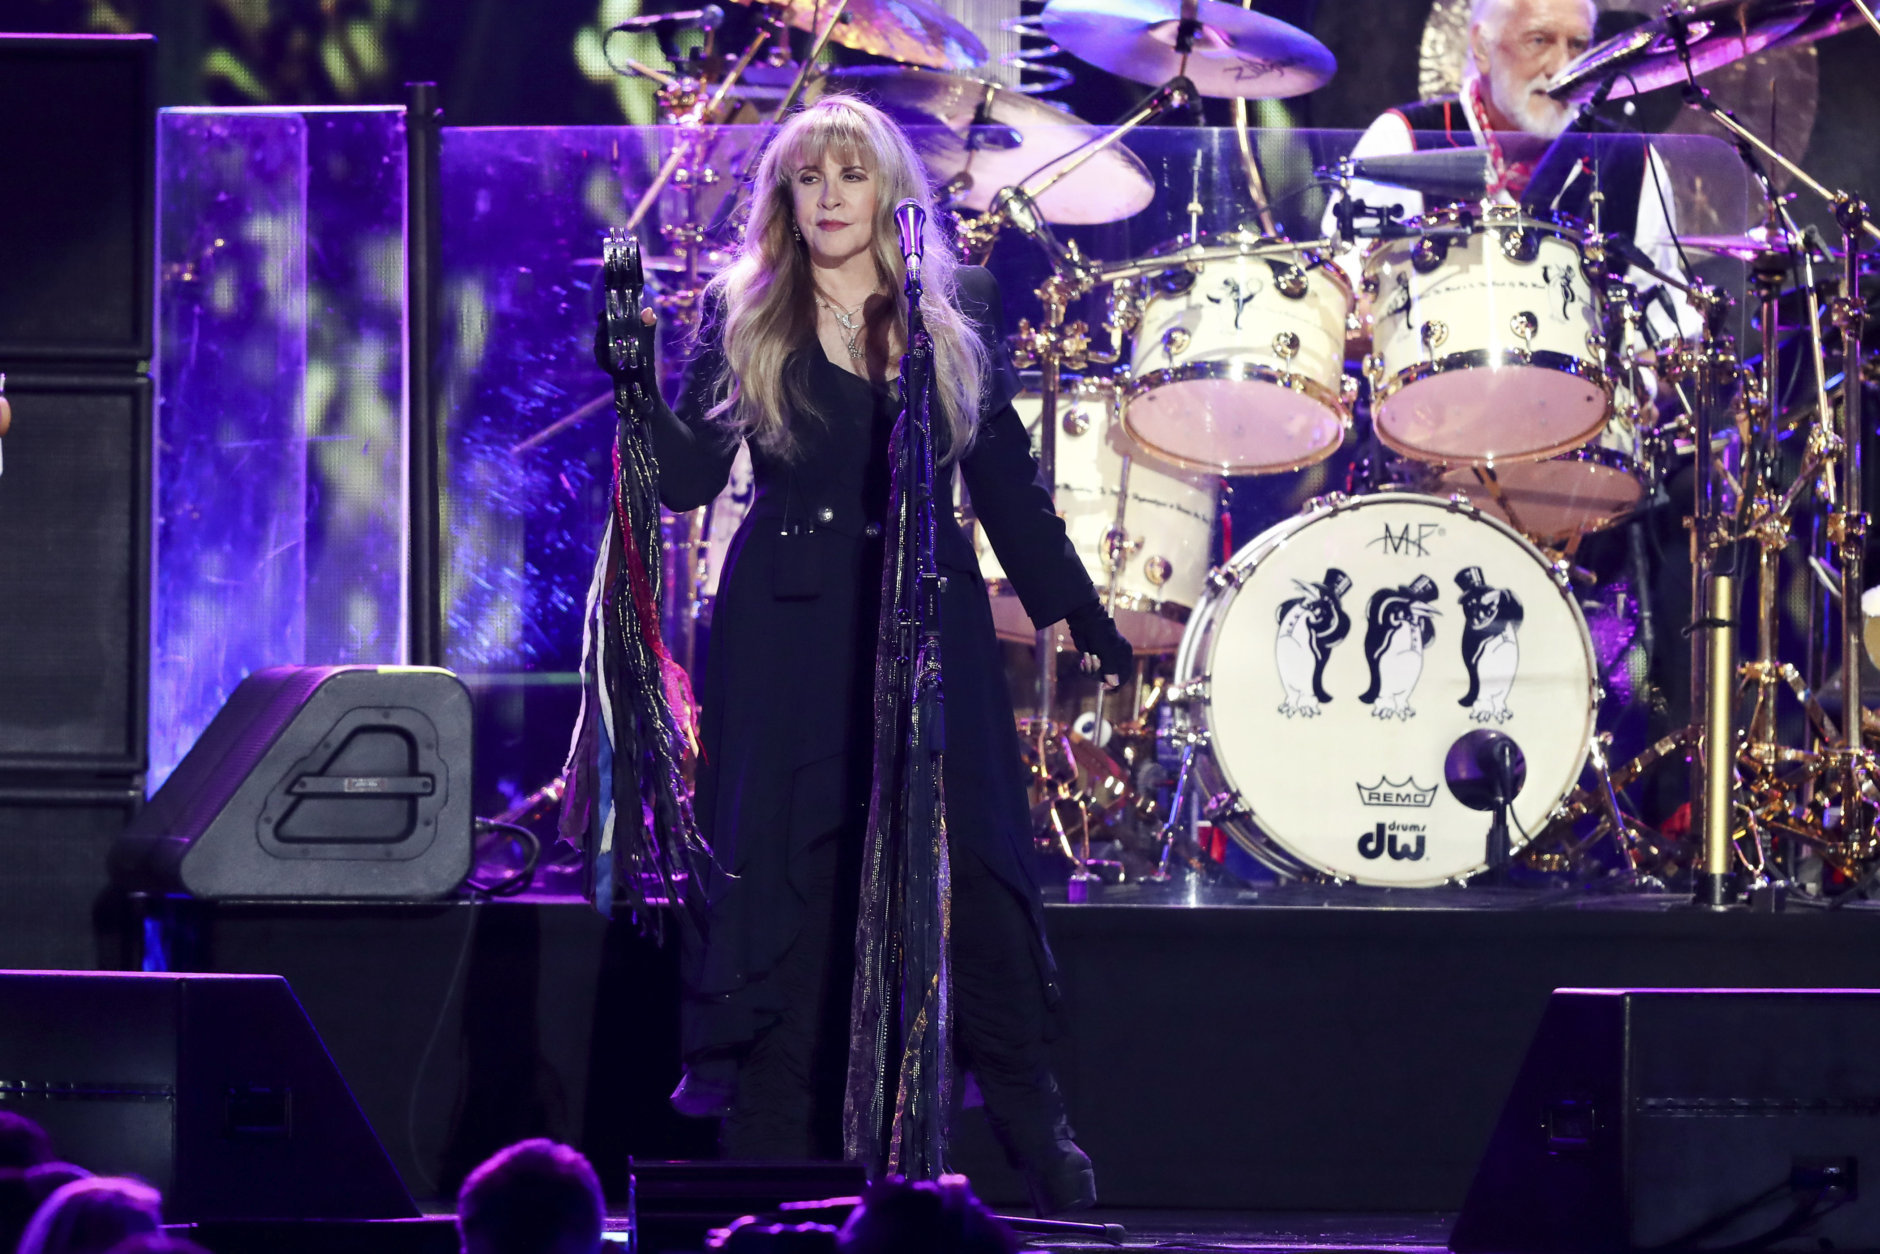 Stevie Nicks of the band Fleetwood Mac performs at the 2018 iHeartRadio Music Festival Day 1 held at T-Mobile Arena on Friday, Sept. 21, 2018, in Las Vegas. (Photo by John Salangsang/Invision/AP)